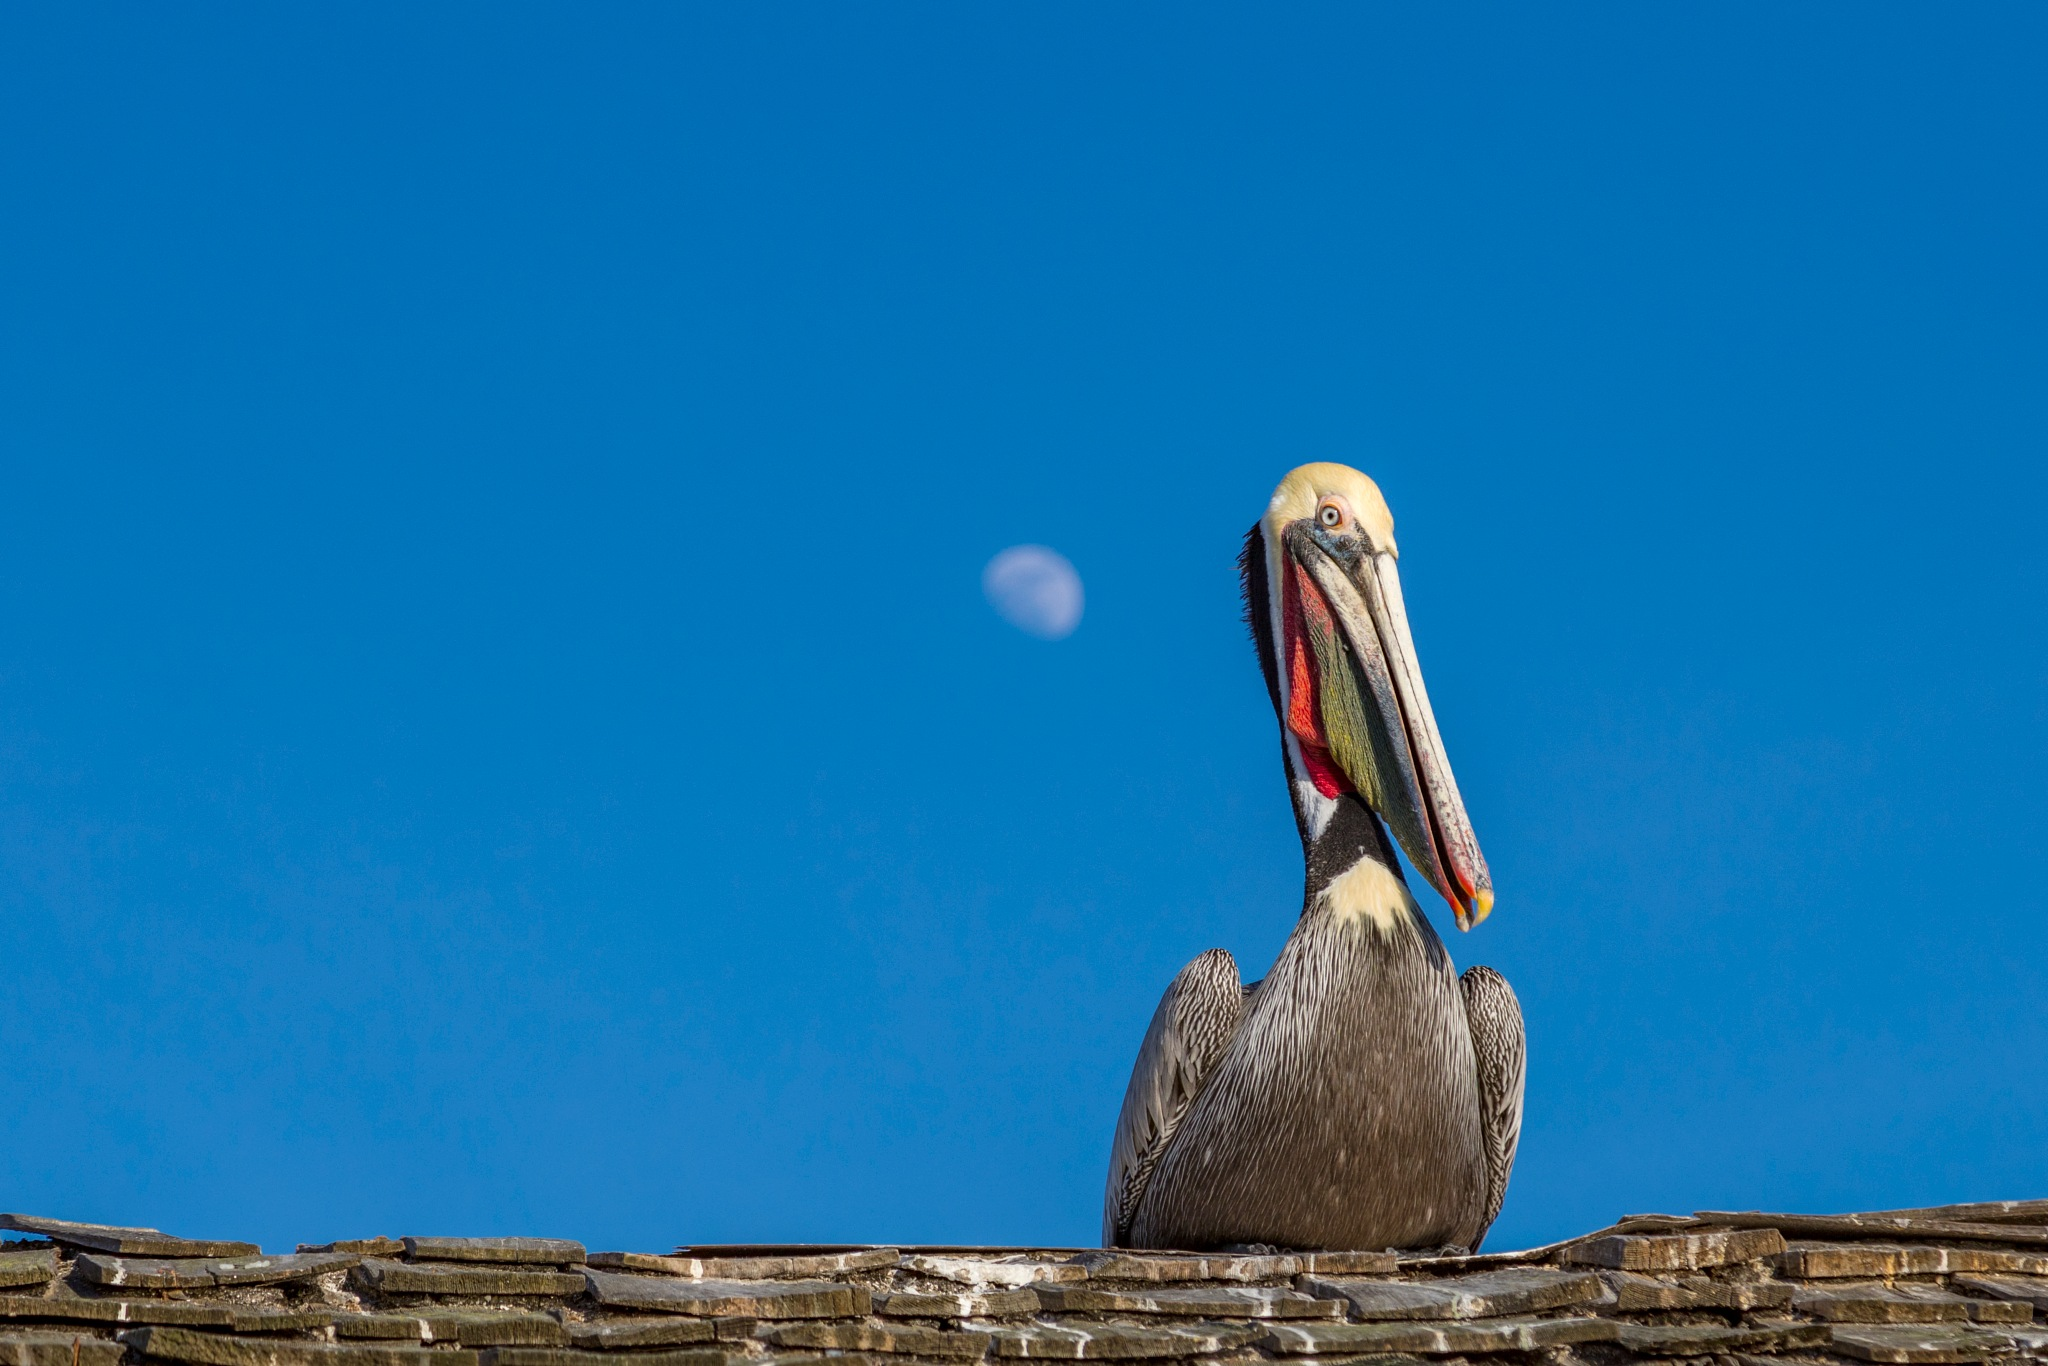 Brown Pelican on a roof  by Janet Aguila Krause